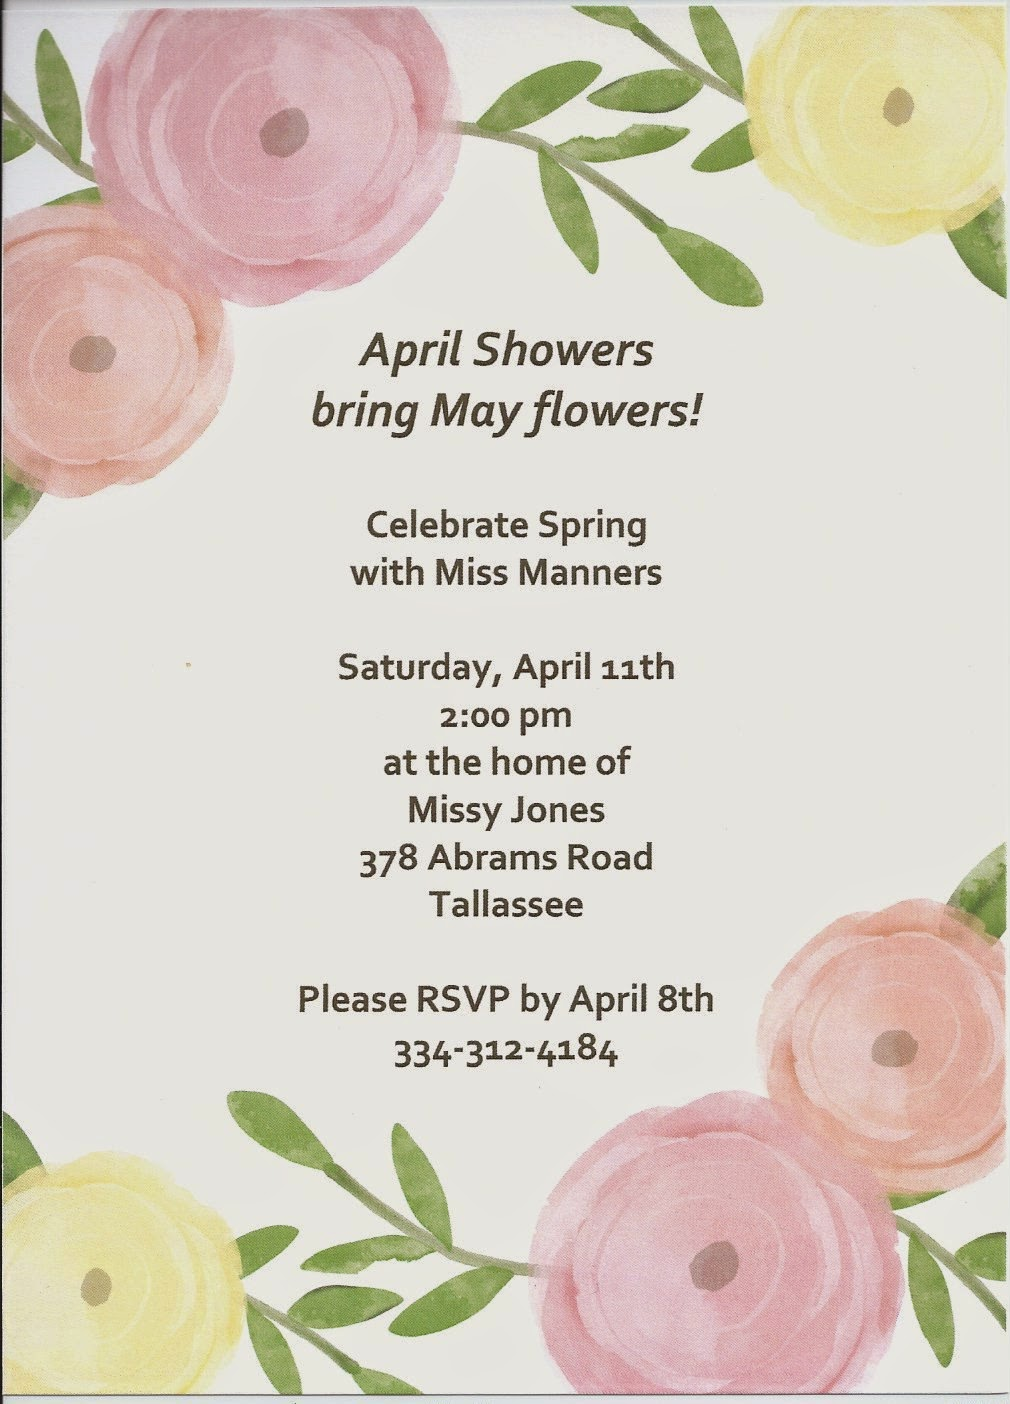 Our Neck Of The Woods: April showers bring May flowers